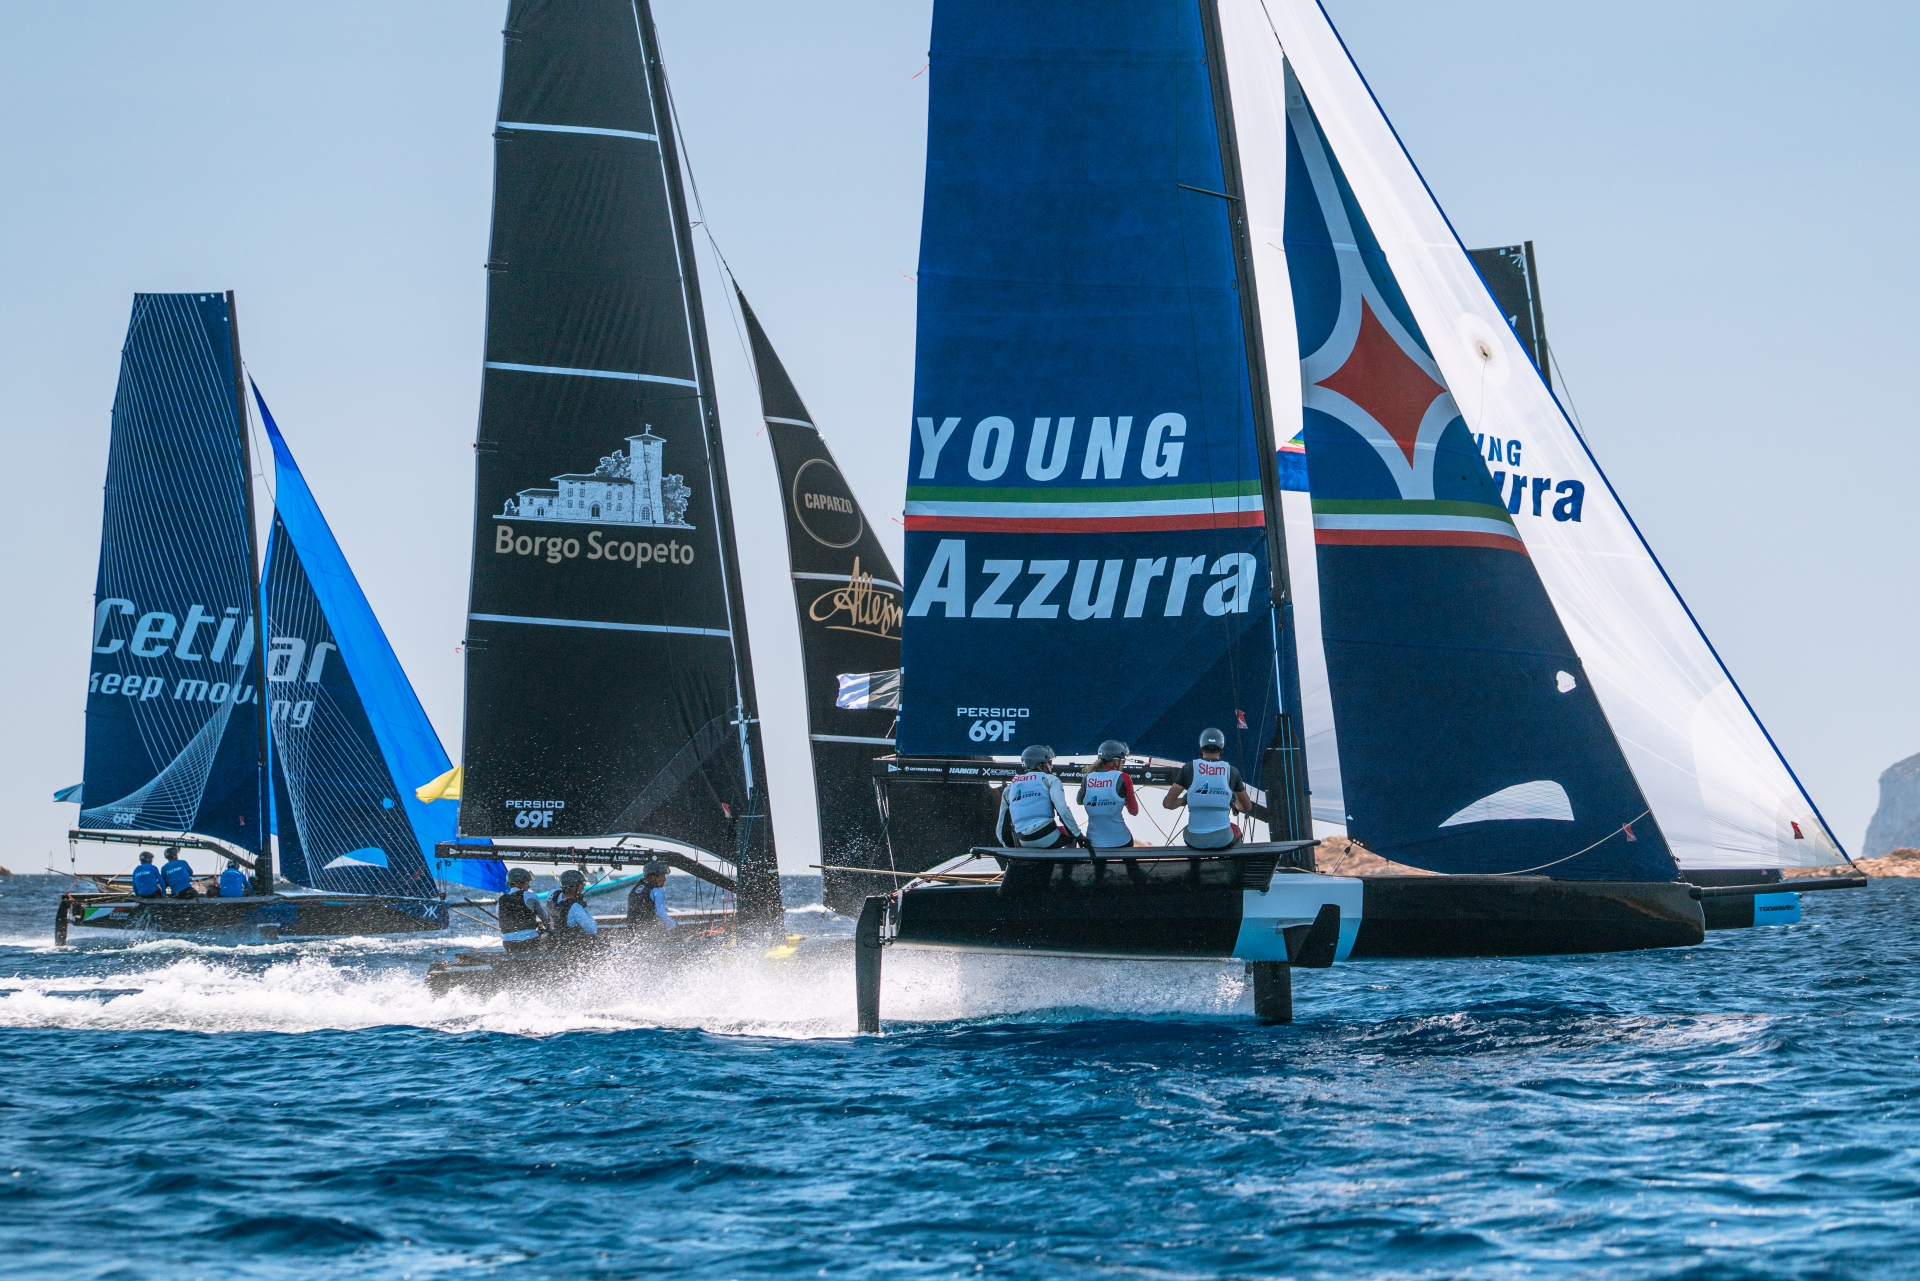 Young Azzurra alla Youth Foiling Gold Cup Act 2 - MEMBER NEWS - Yacht Club Costa Smeralda